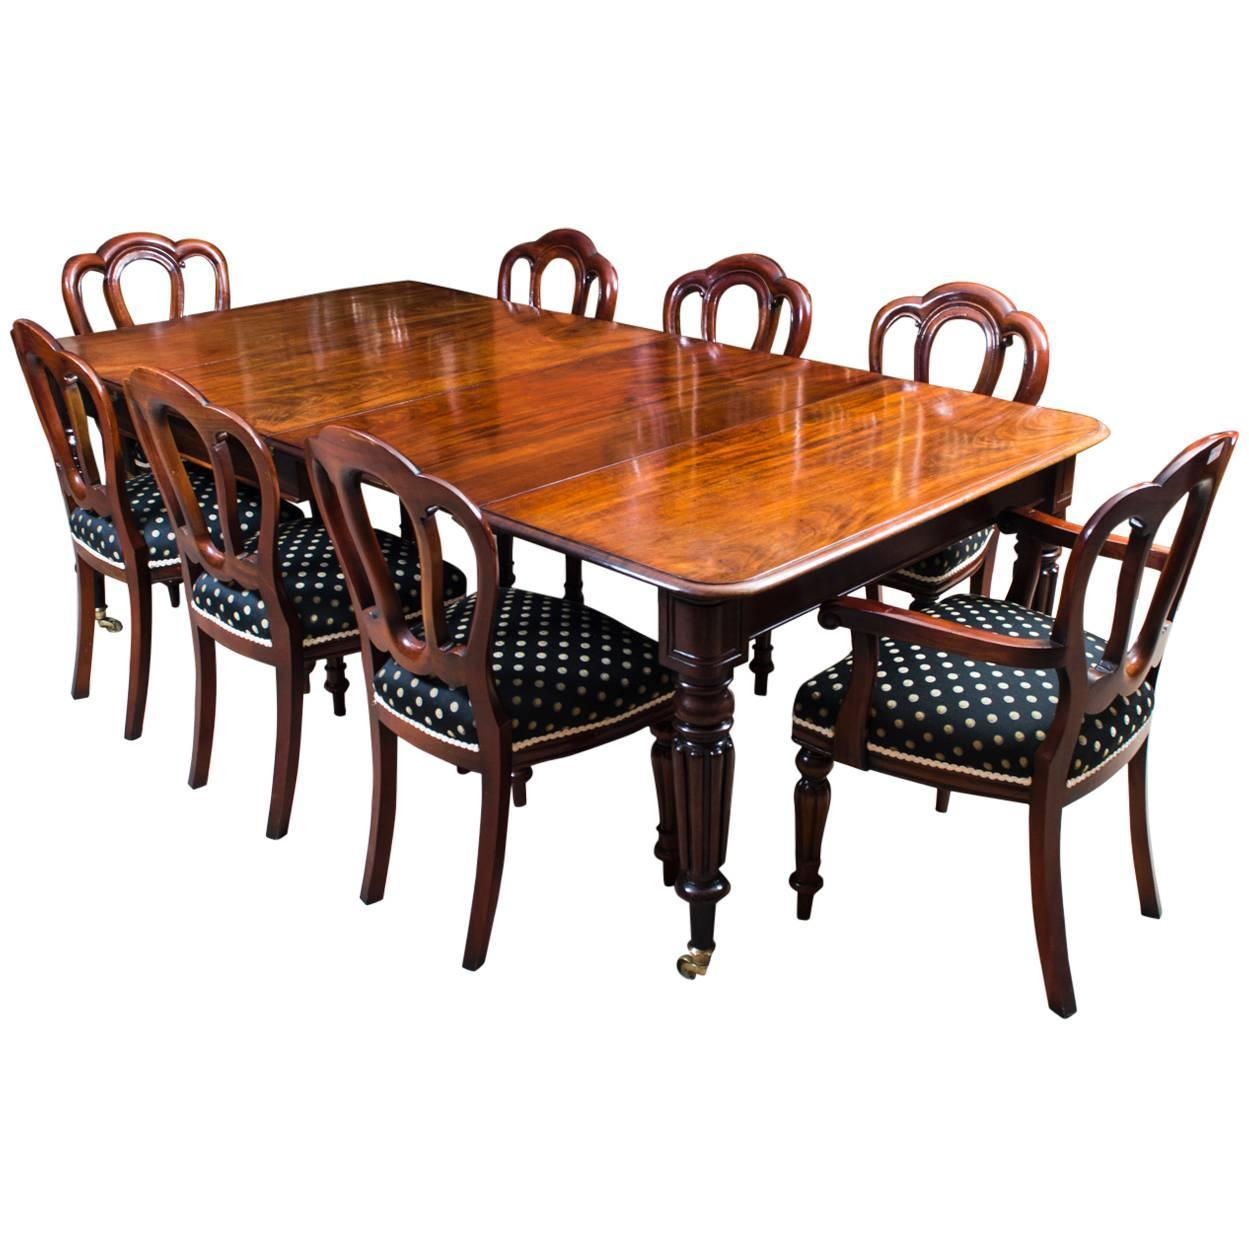 Vintage Dining Room Tables: Antique Regency Mahogany Dining Table Eight Admiralty